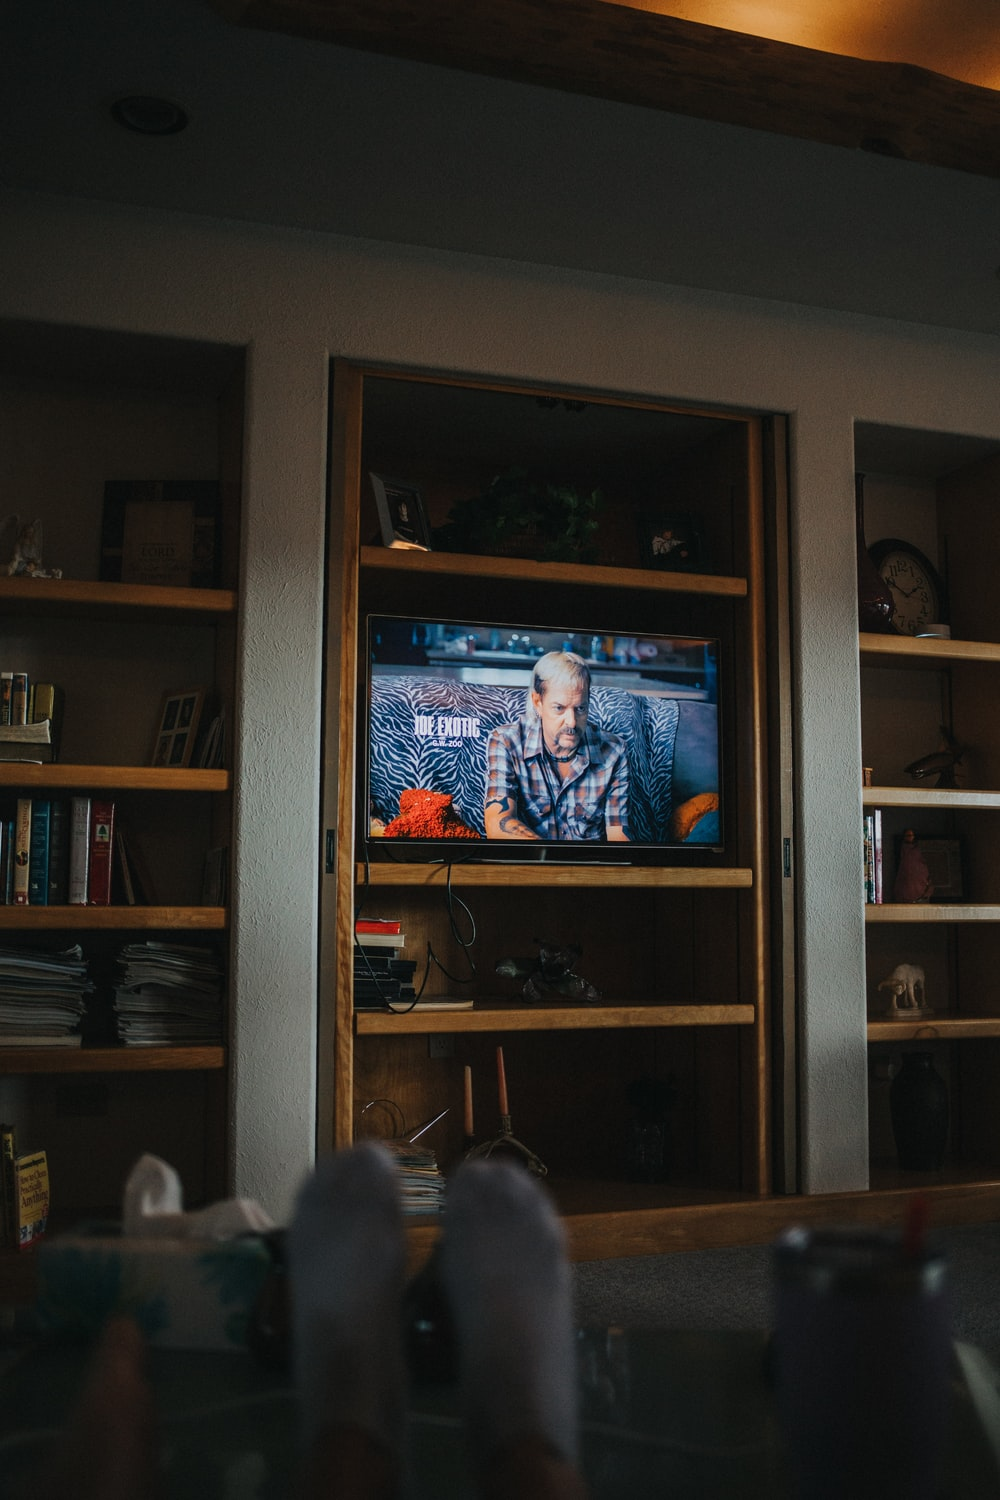 black flat screen tv turned on displaying man in blue suit jacket